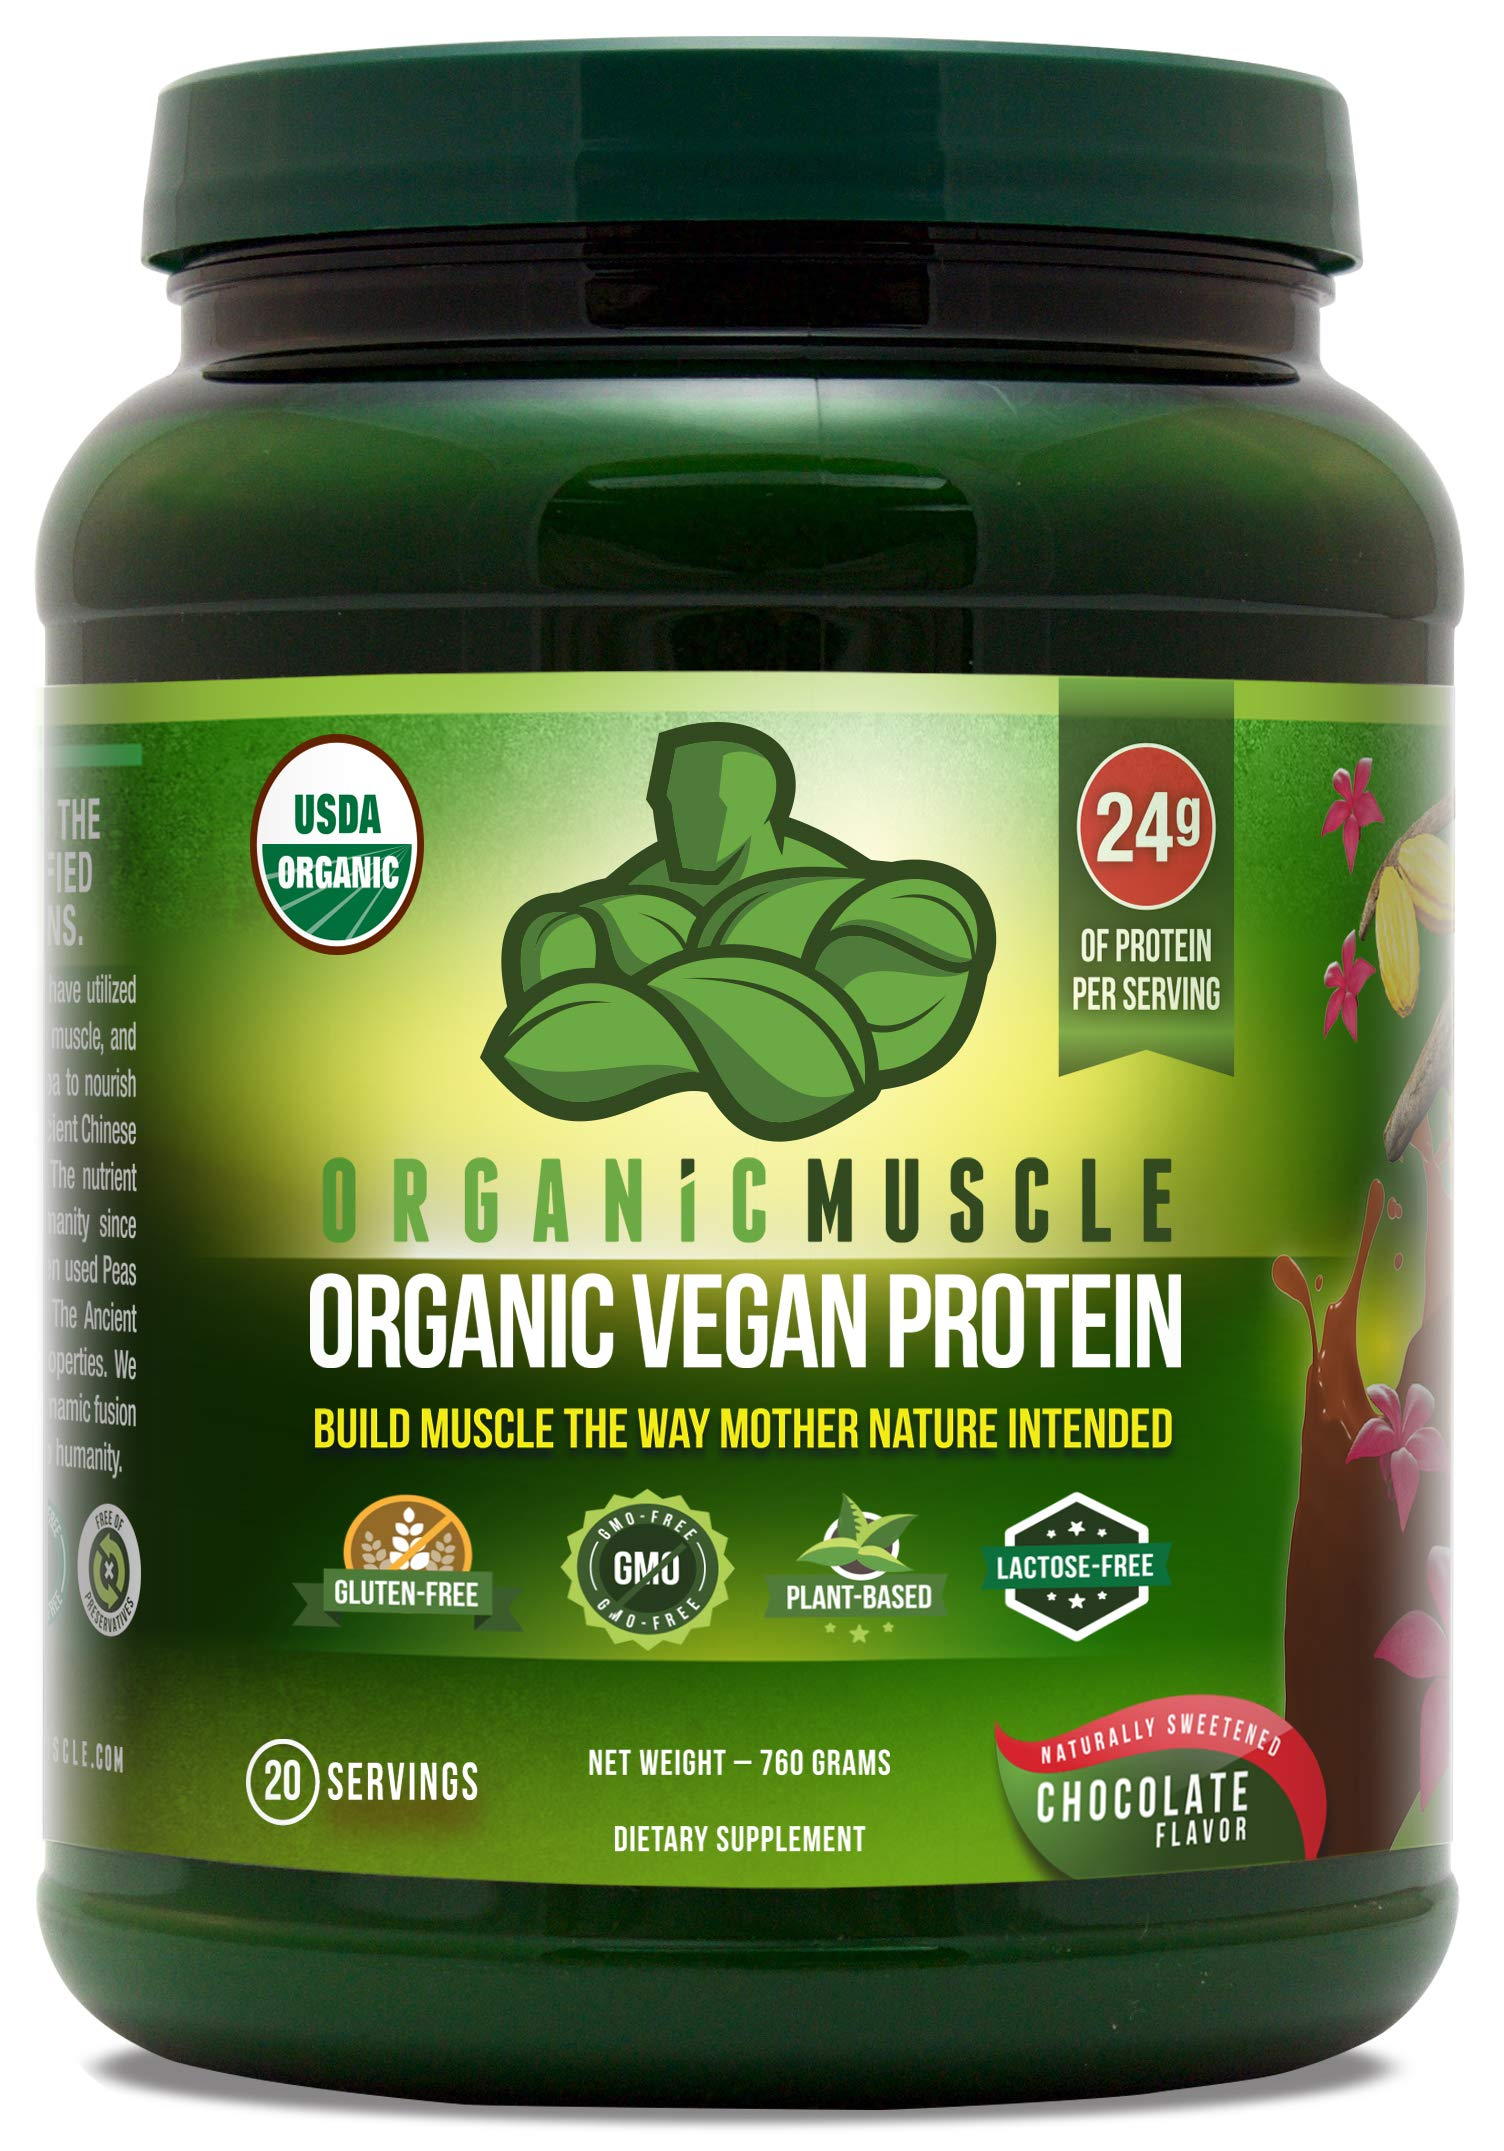 Organic Vegan Protein Powder - Great Tasting Chocolate Flavor W/ 24g of Protein -100% Organic Plant Based Protein Blend of Pea, Hemp, Rice Protein +Chia, Flax Seed, More -760g